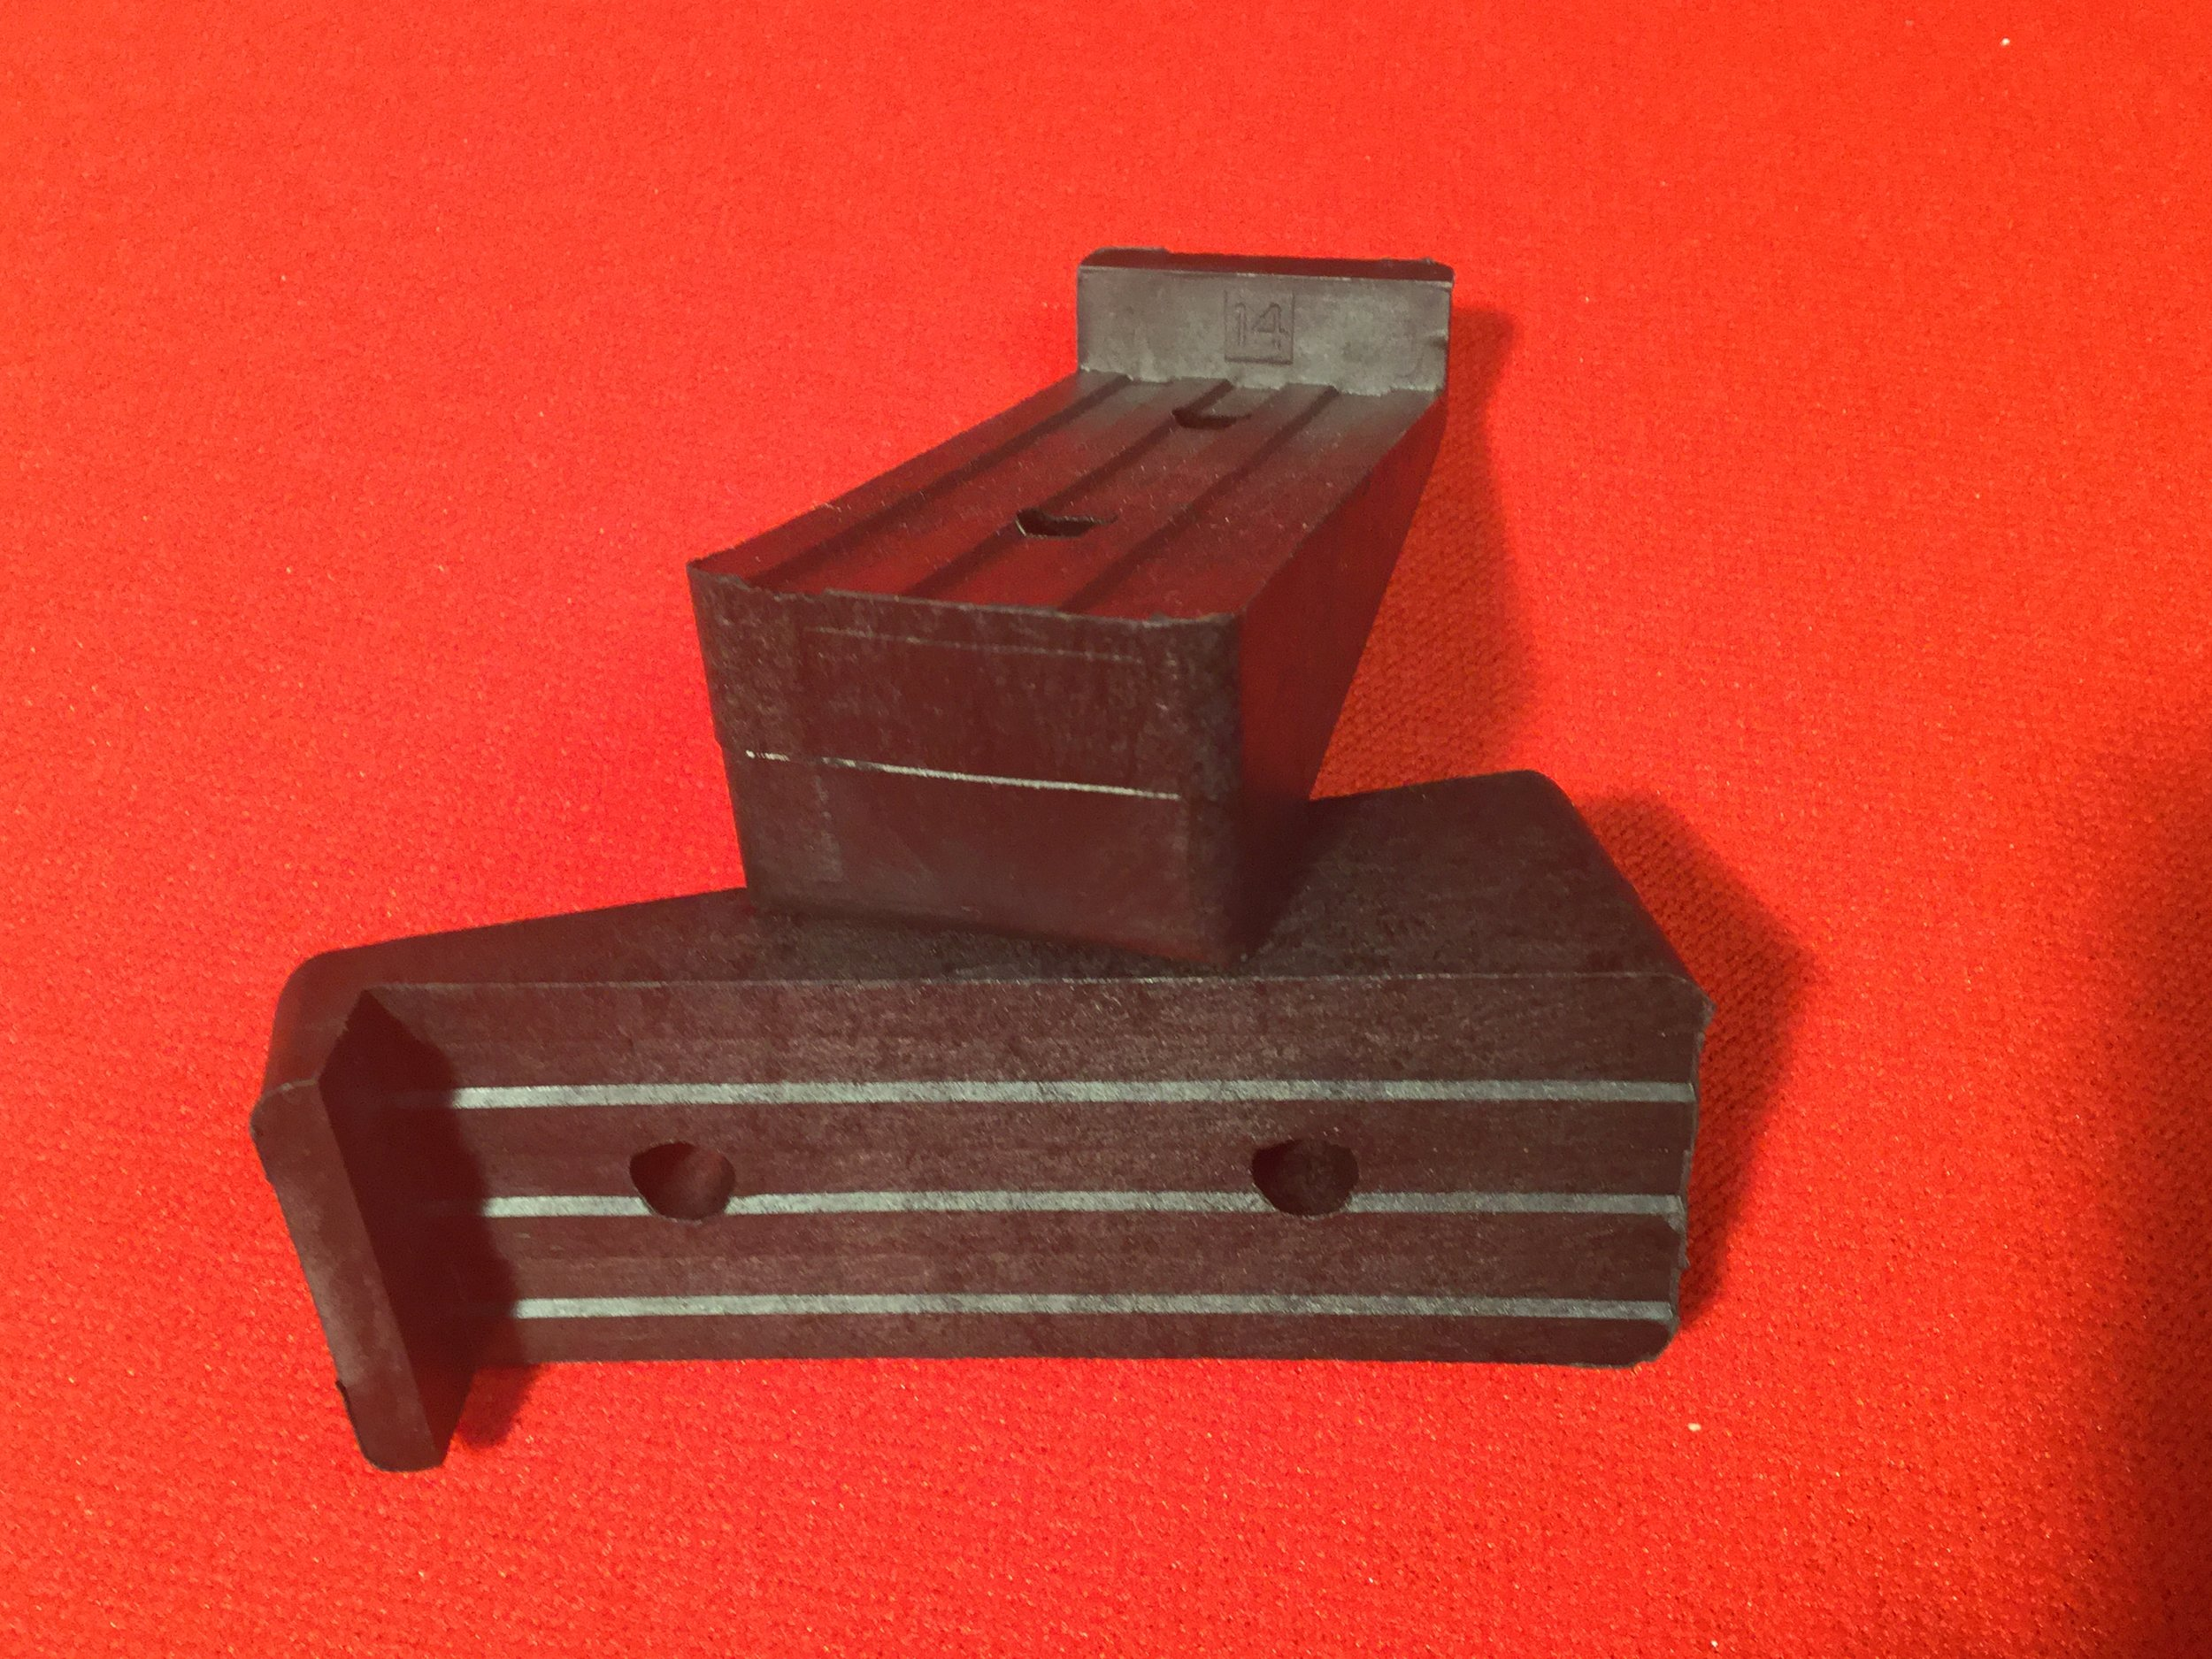 Pitch Blocks - Molded high strength, glass-reinforced composite. Grooved faces provide precision alignment with blade base. Color: Black. (Two identical blocks per blade). Separate blocks required for each setting. Block angles from 8 degrees to 18 degrees available in 1 degree increments.